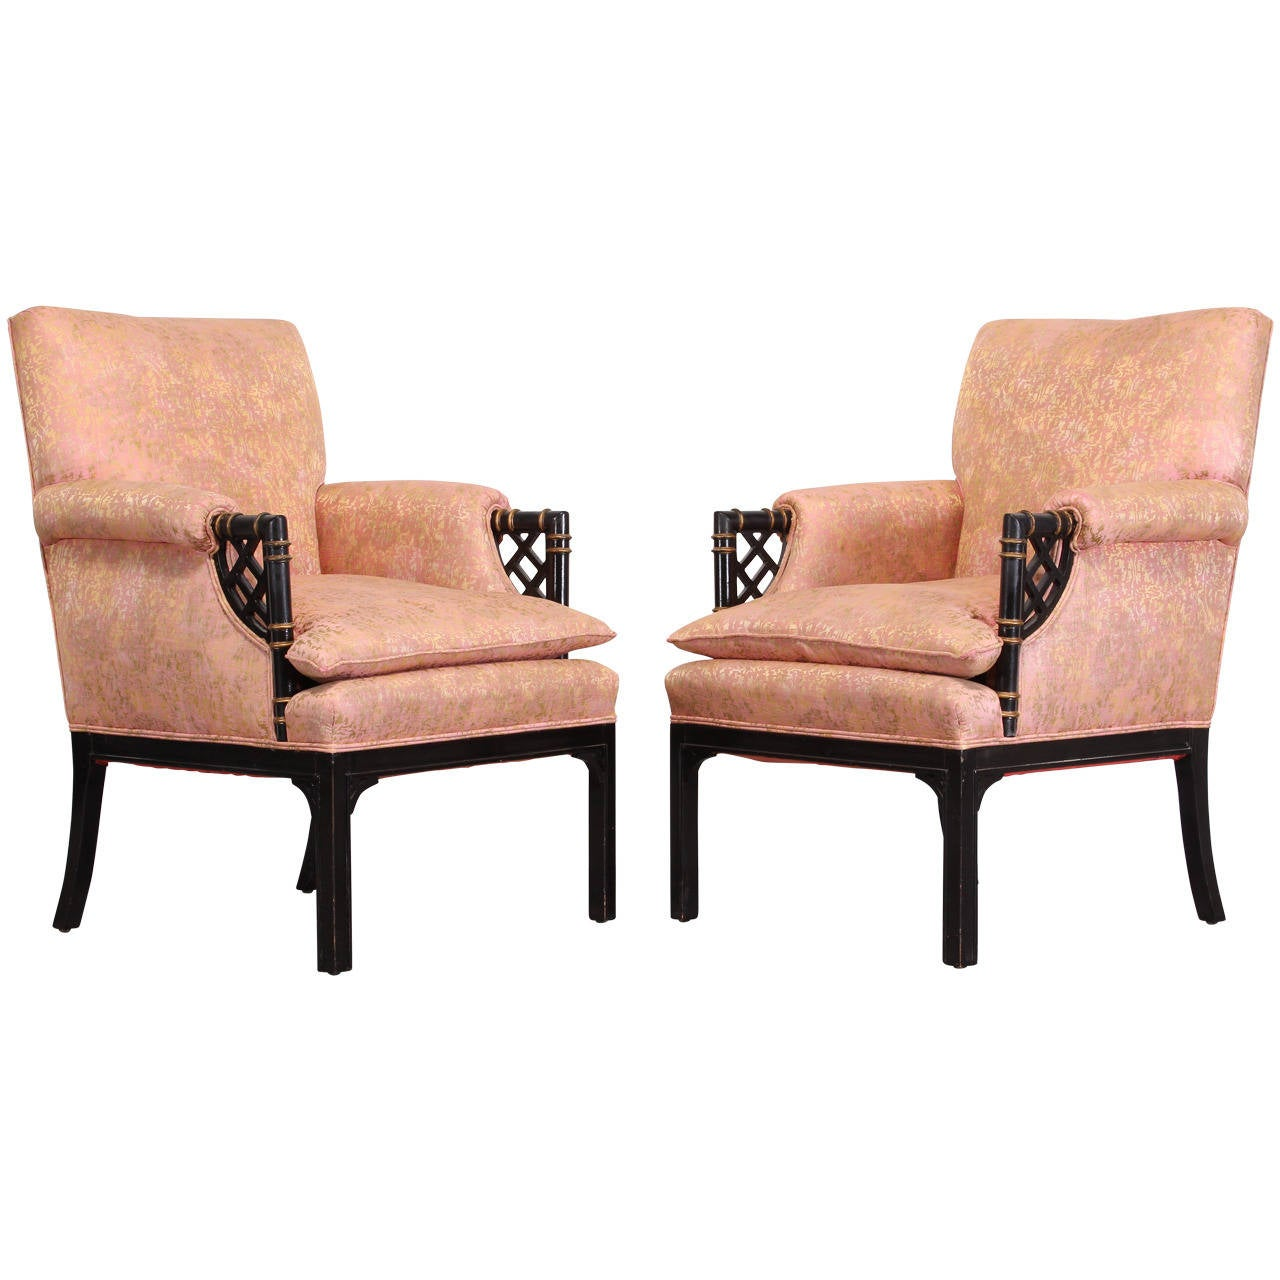 Hollywood Regency Ebonized Arm Chairs, 1940 at 1stdibs